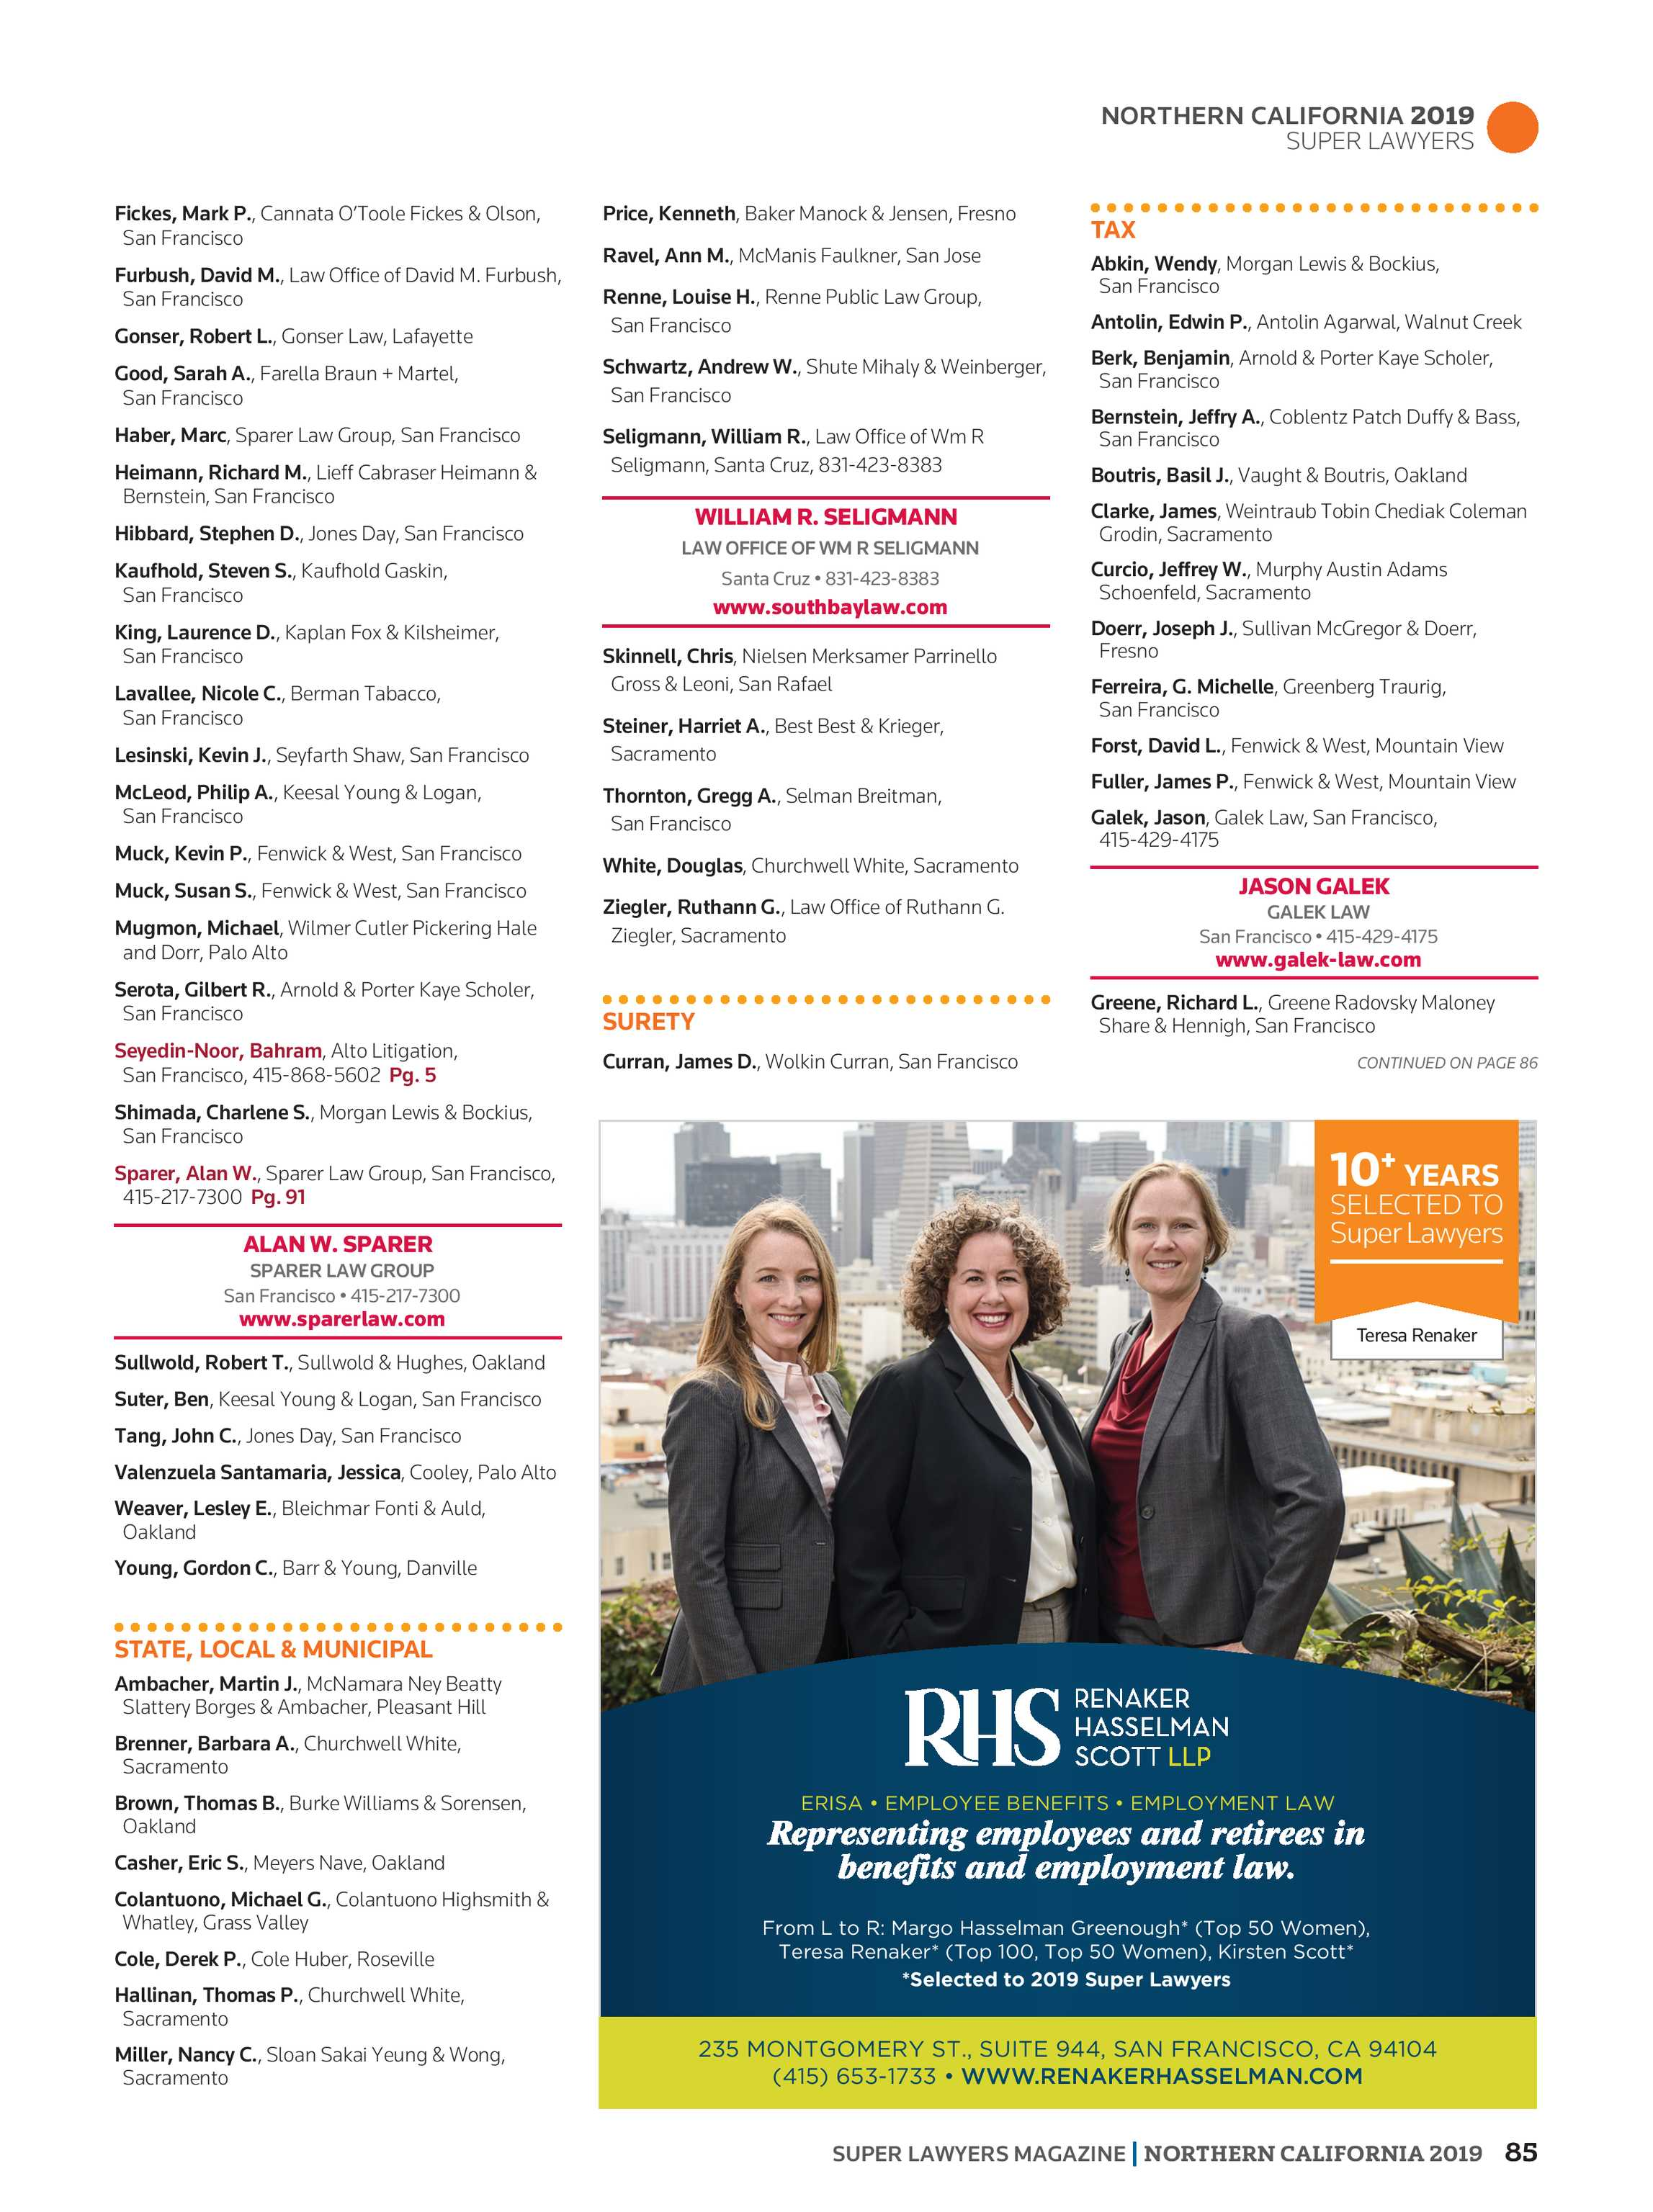 Super Lawyers - Northern California 2019 - page 85